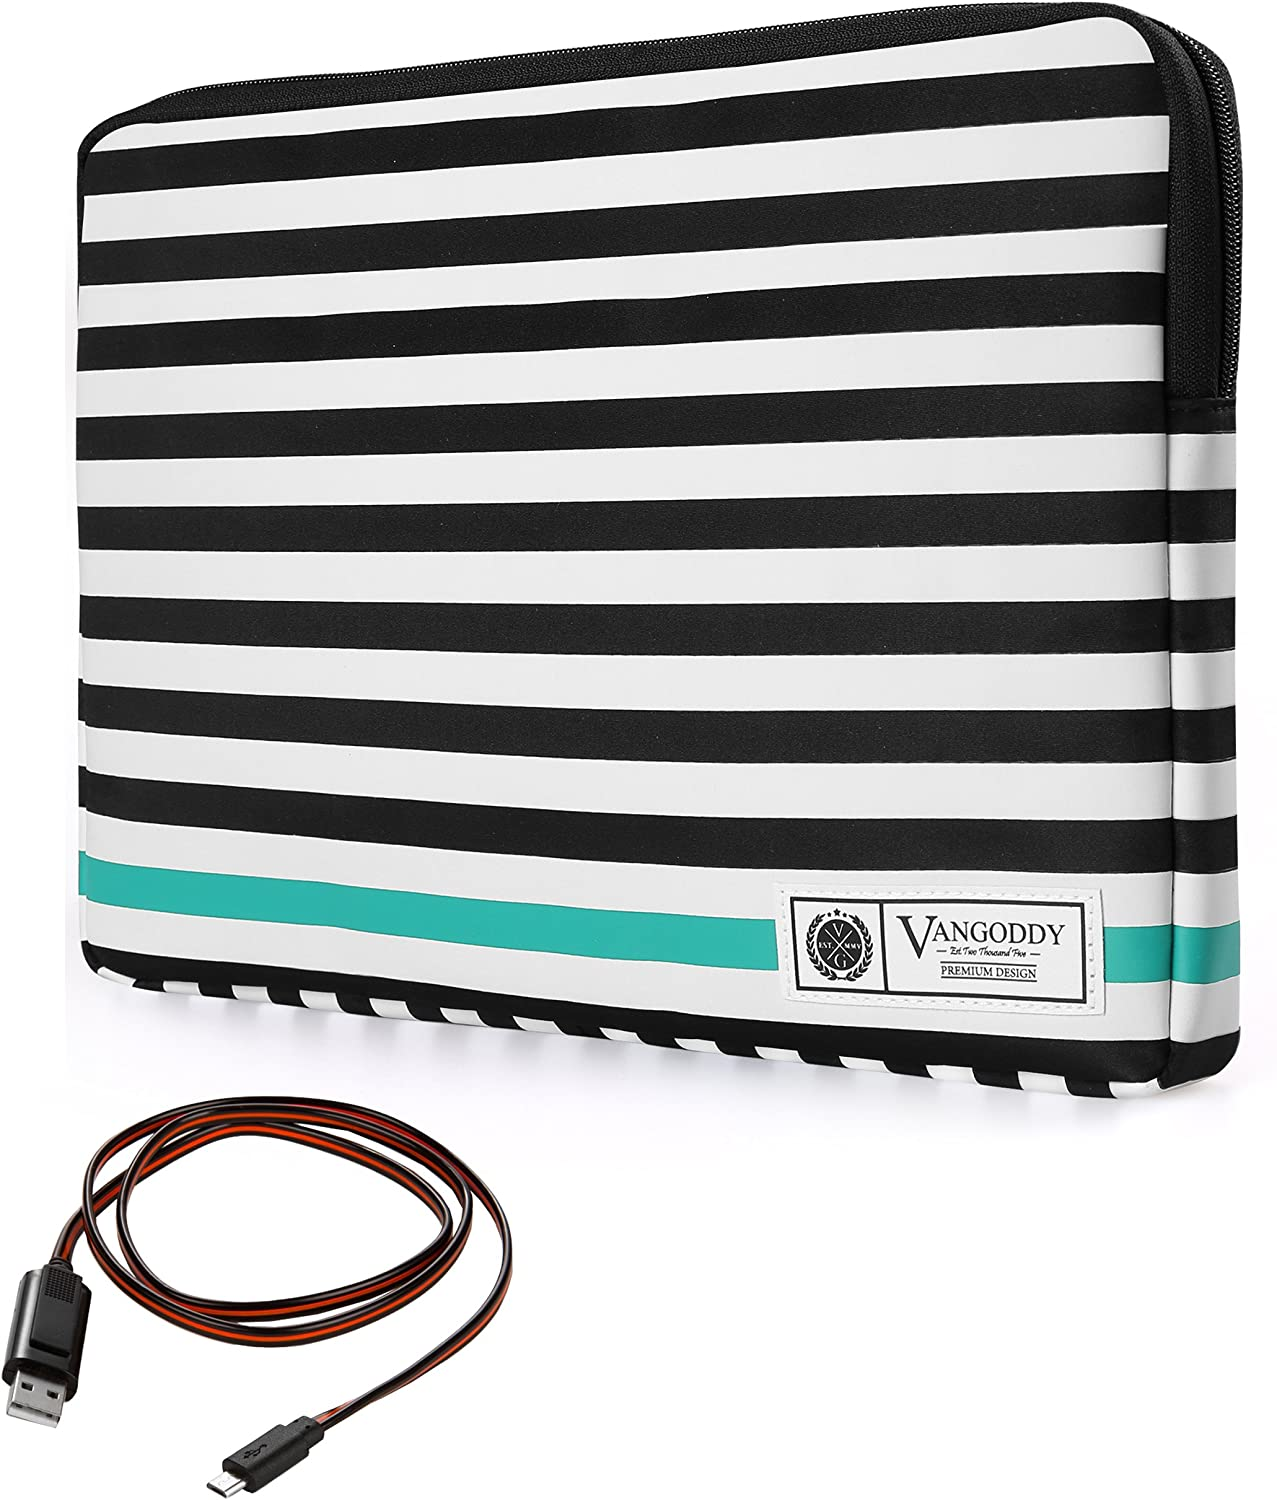 Vangoddy Luxe B Series 15.6 Inch Black White Stripe Padded Carrying Sleeve for Acer Chromebook 15, Aspire 2016, V15, V Nitro, E, V3 15.6 inch Laptop with Sync and Charge Cable